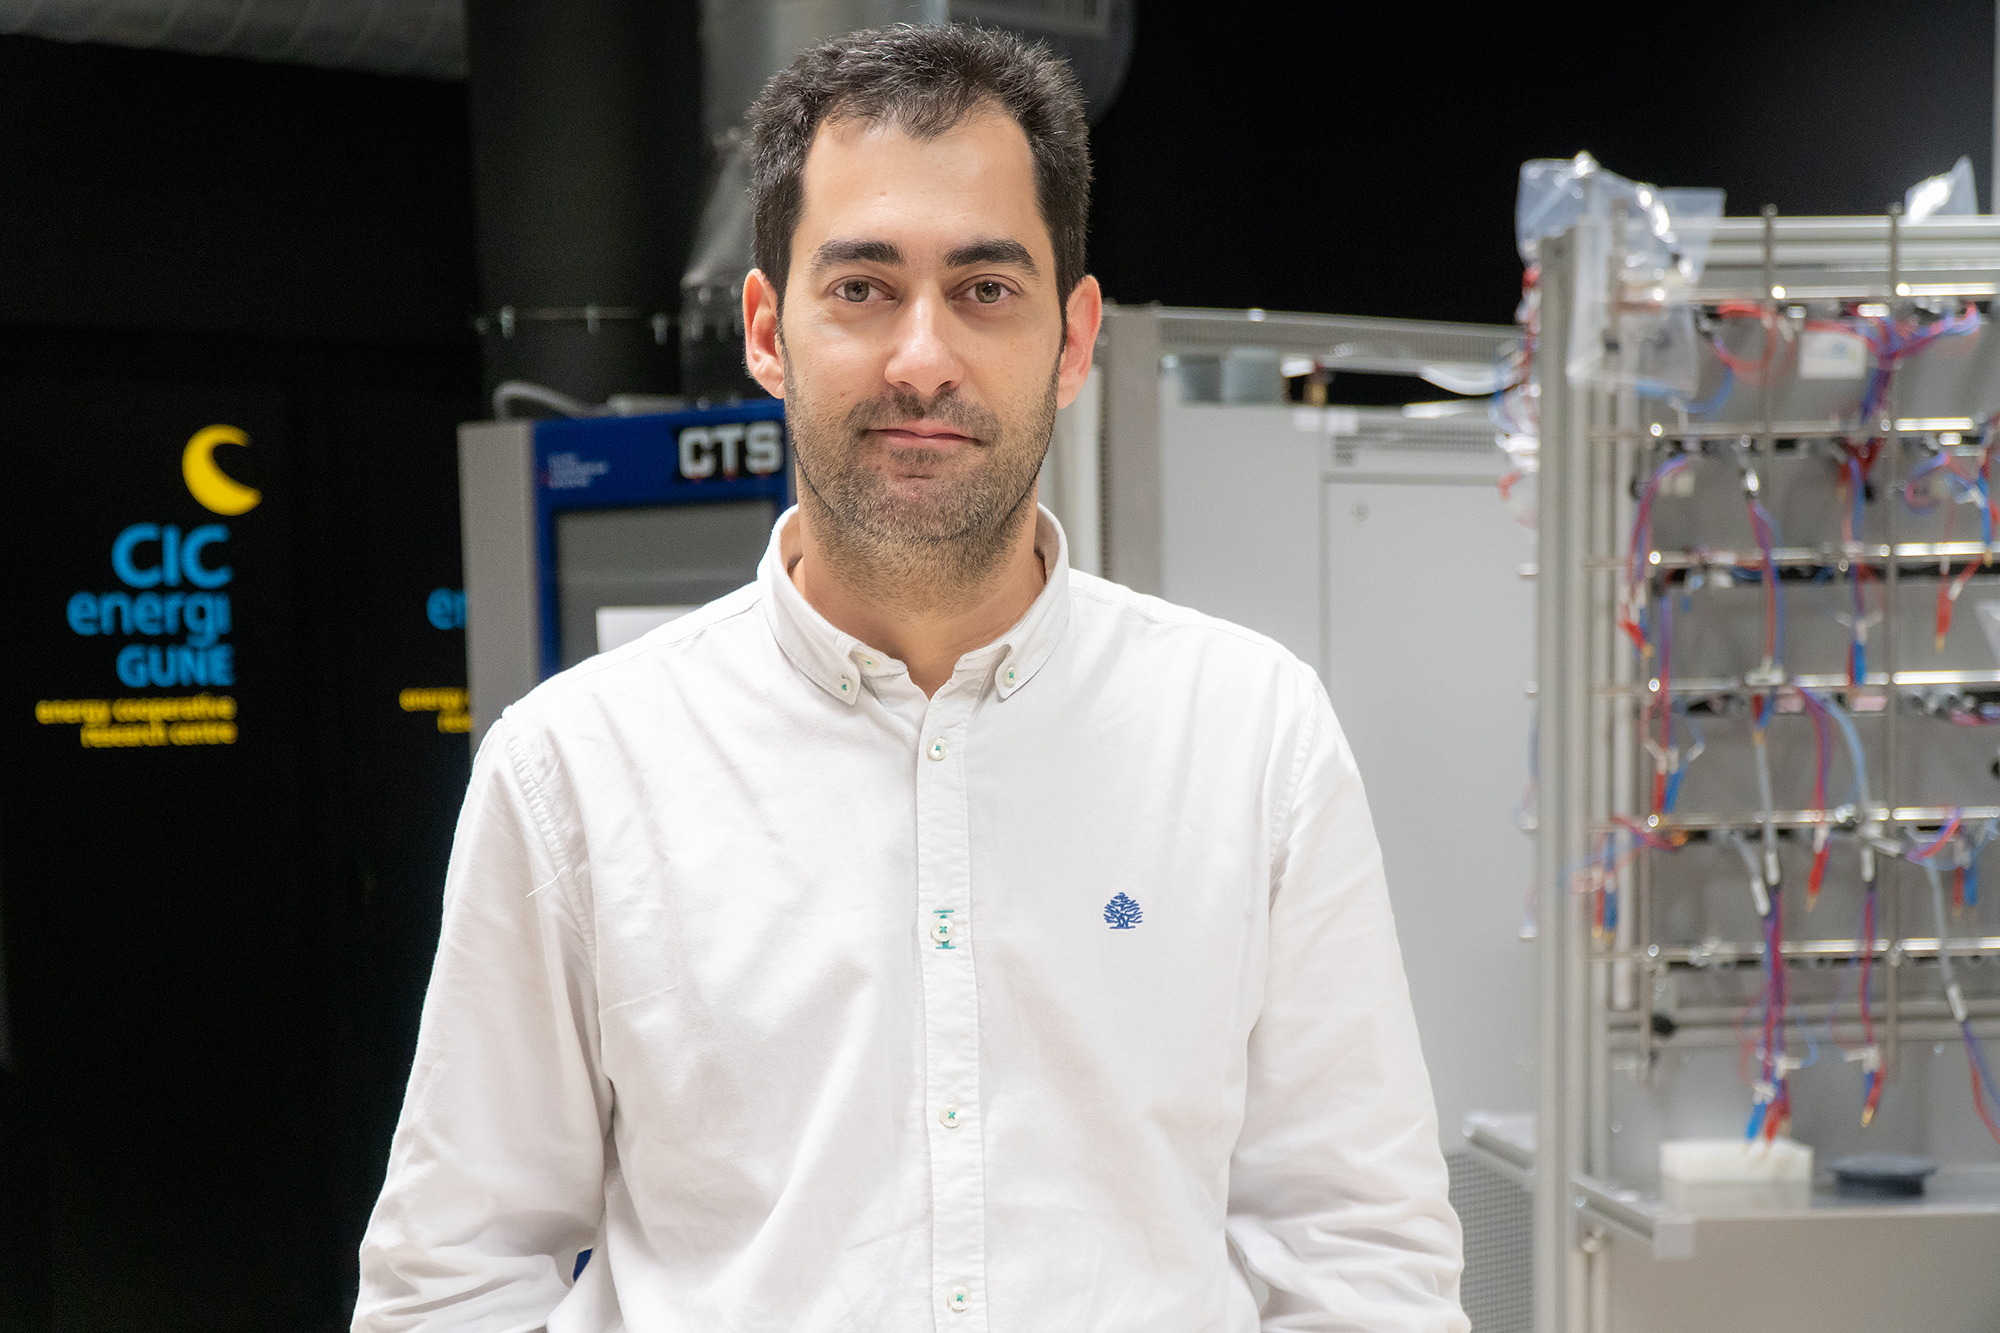 Daniel Carriazo, CIC energiGUNE´s researcher